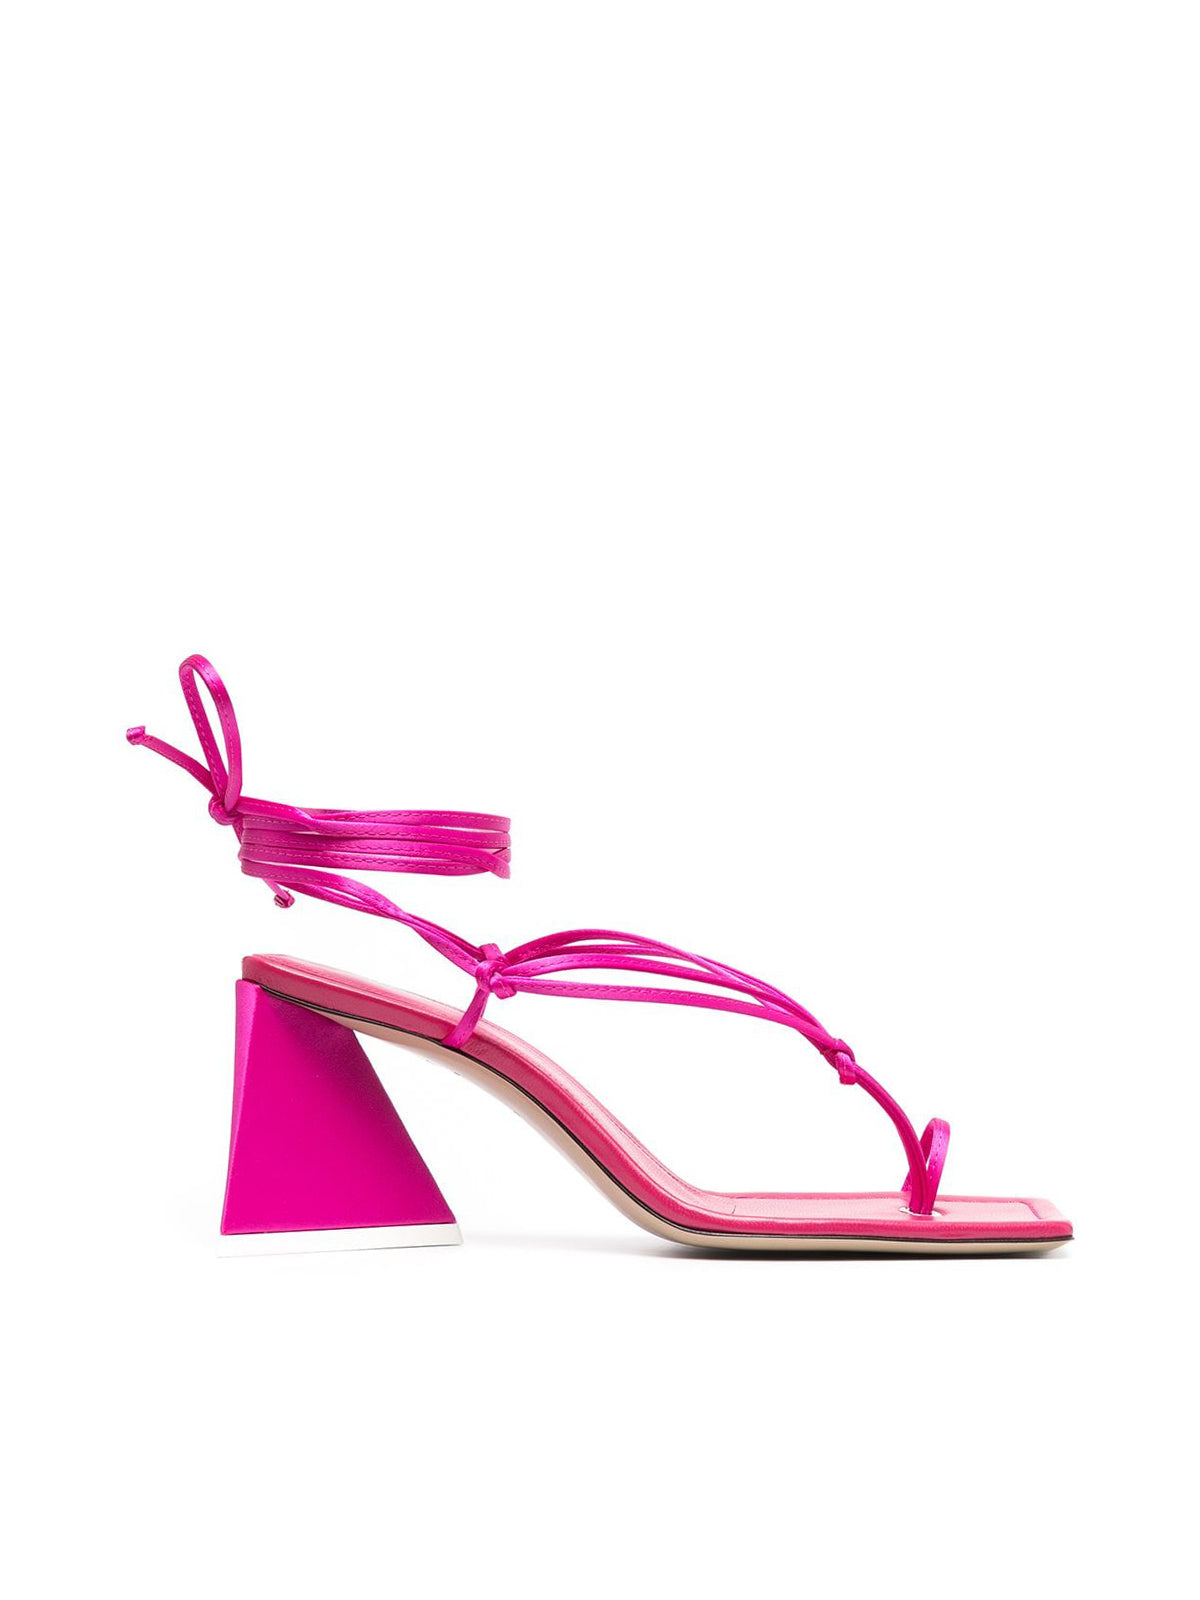 thong-strap self-tie sandals